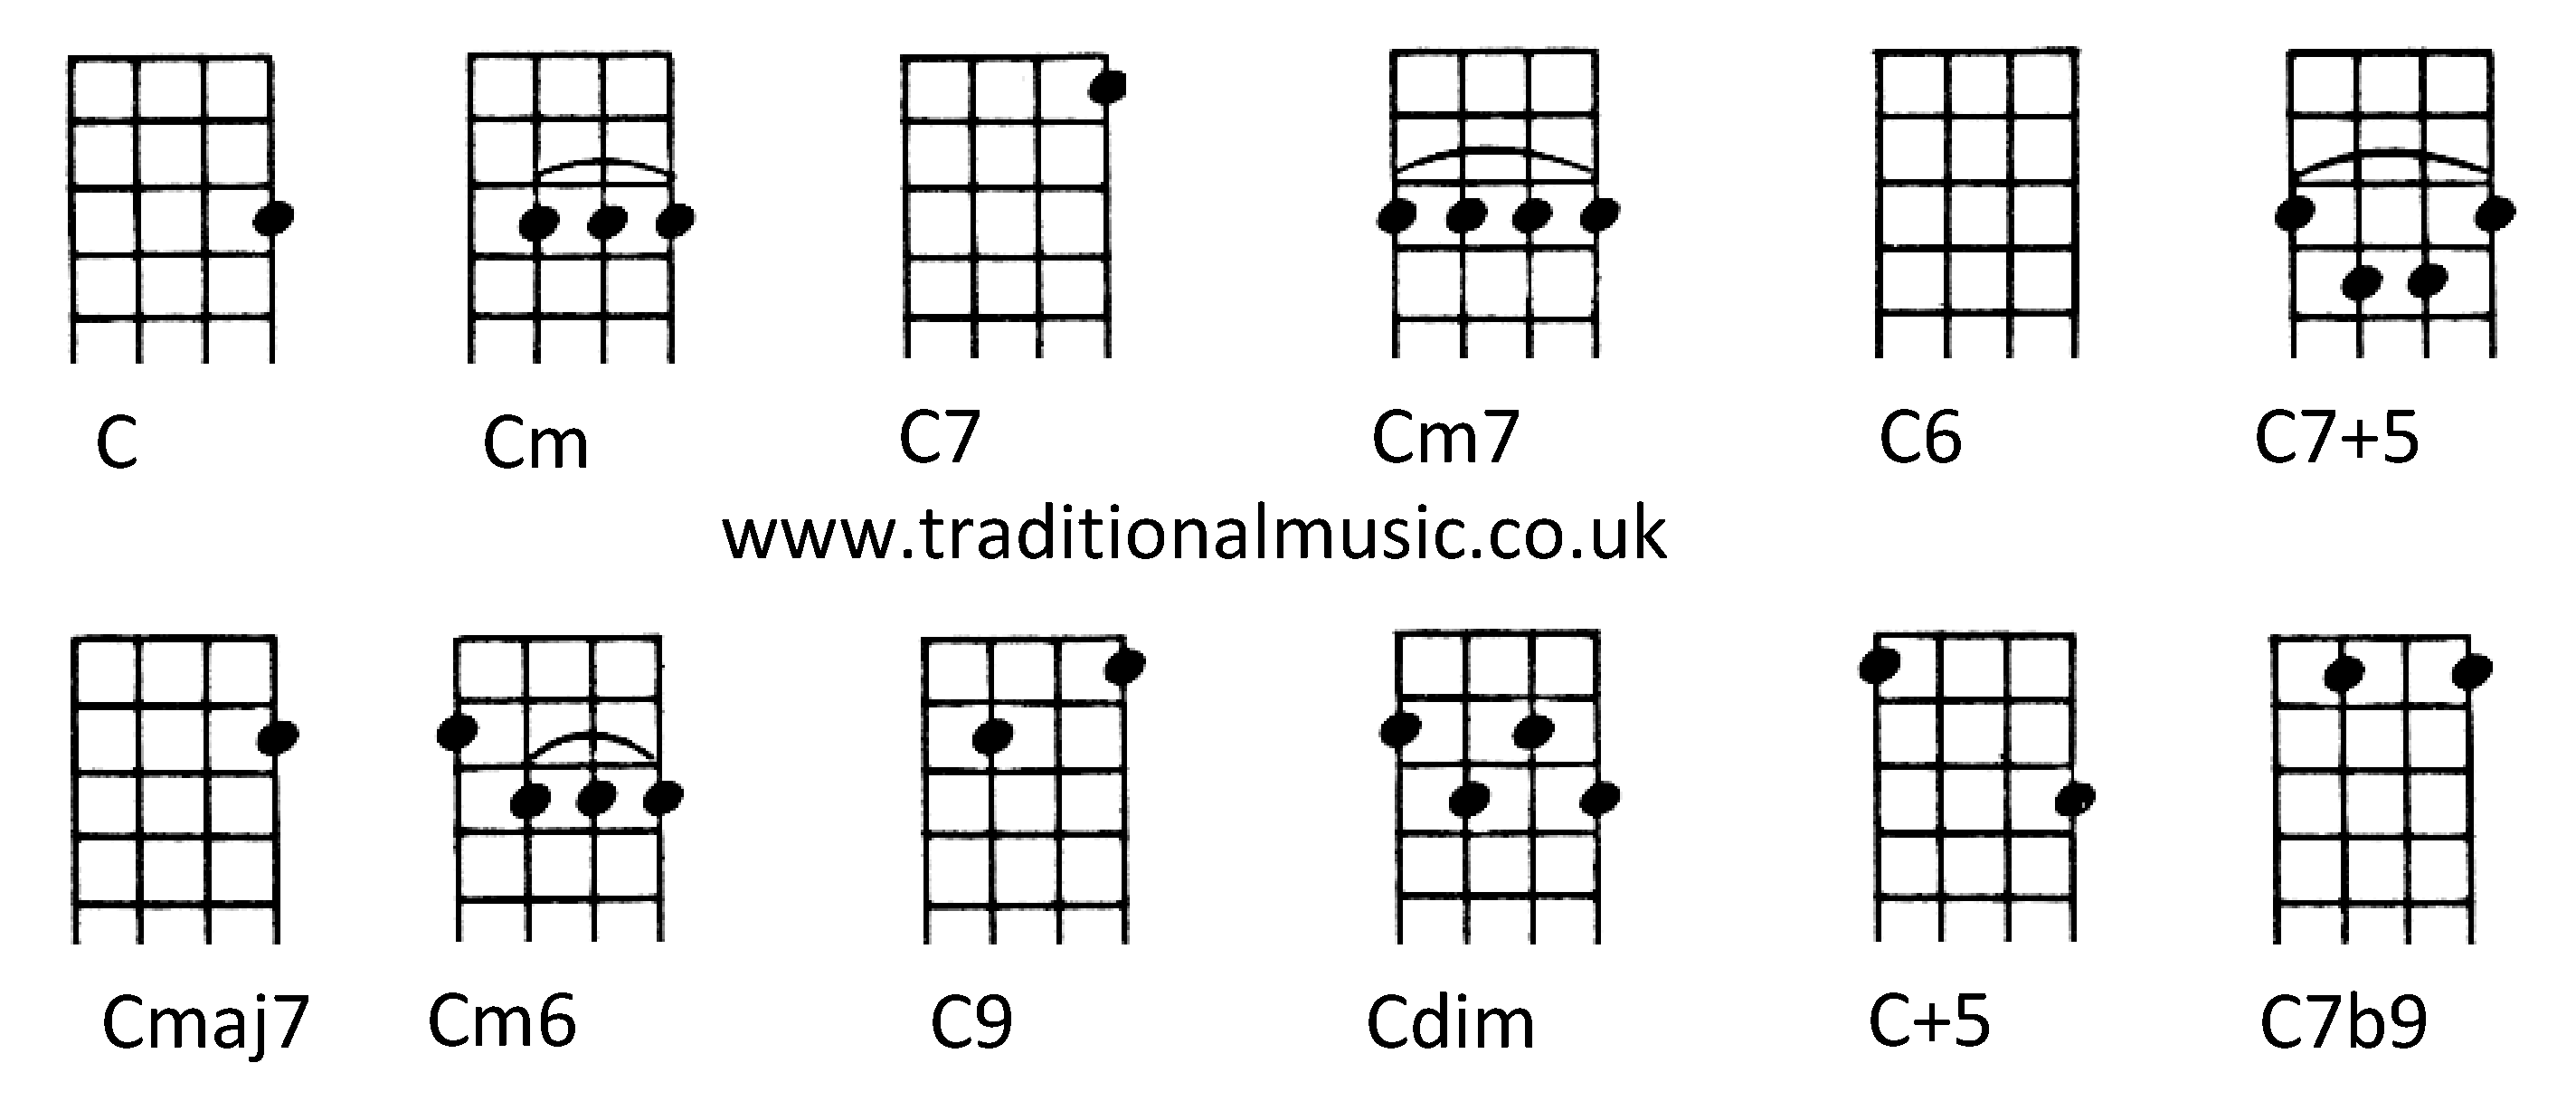 Chords for ukulele c tuningc cm c7 cm7 c6 c75 cmaj7 cm6 c9 cdim chords for ukulele chords for ukulele c tuningc cm c7 cm7 c6 hexwebz Choice Image